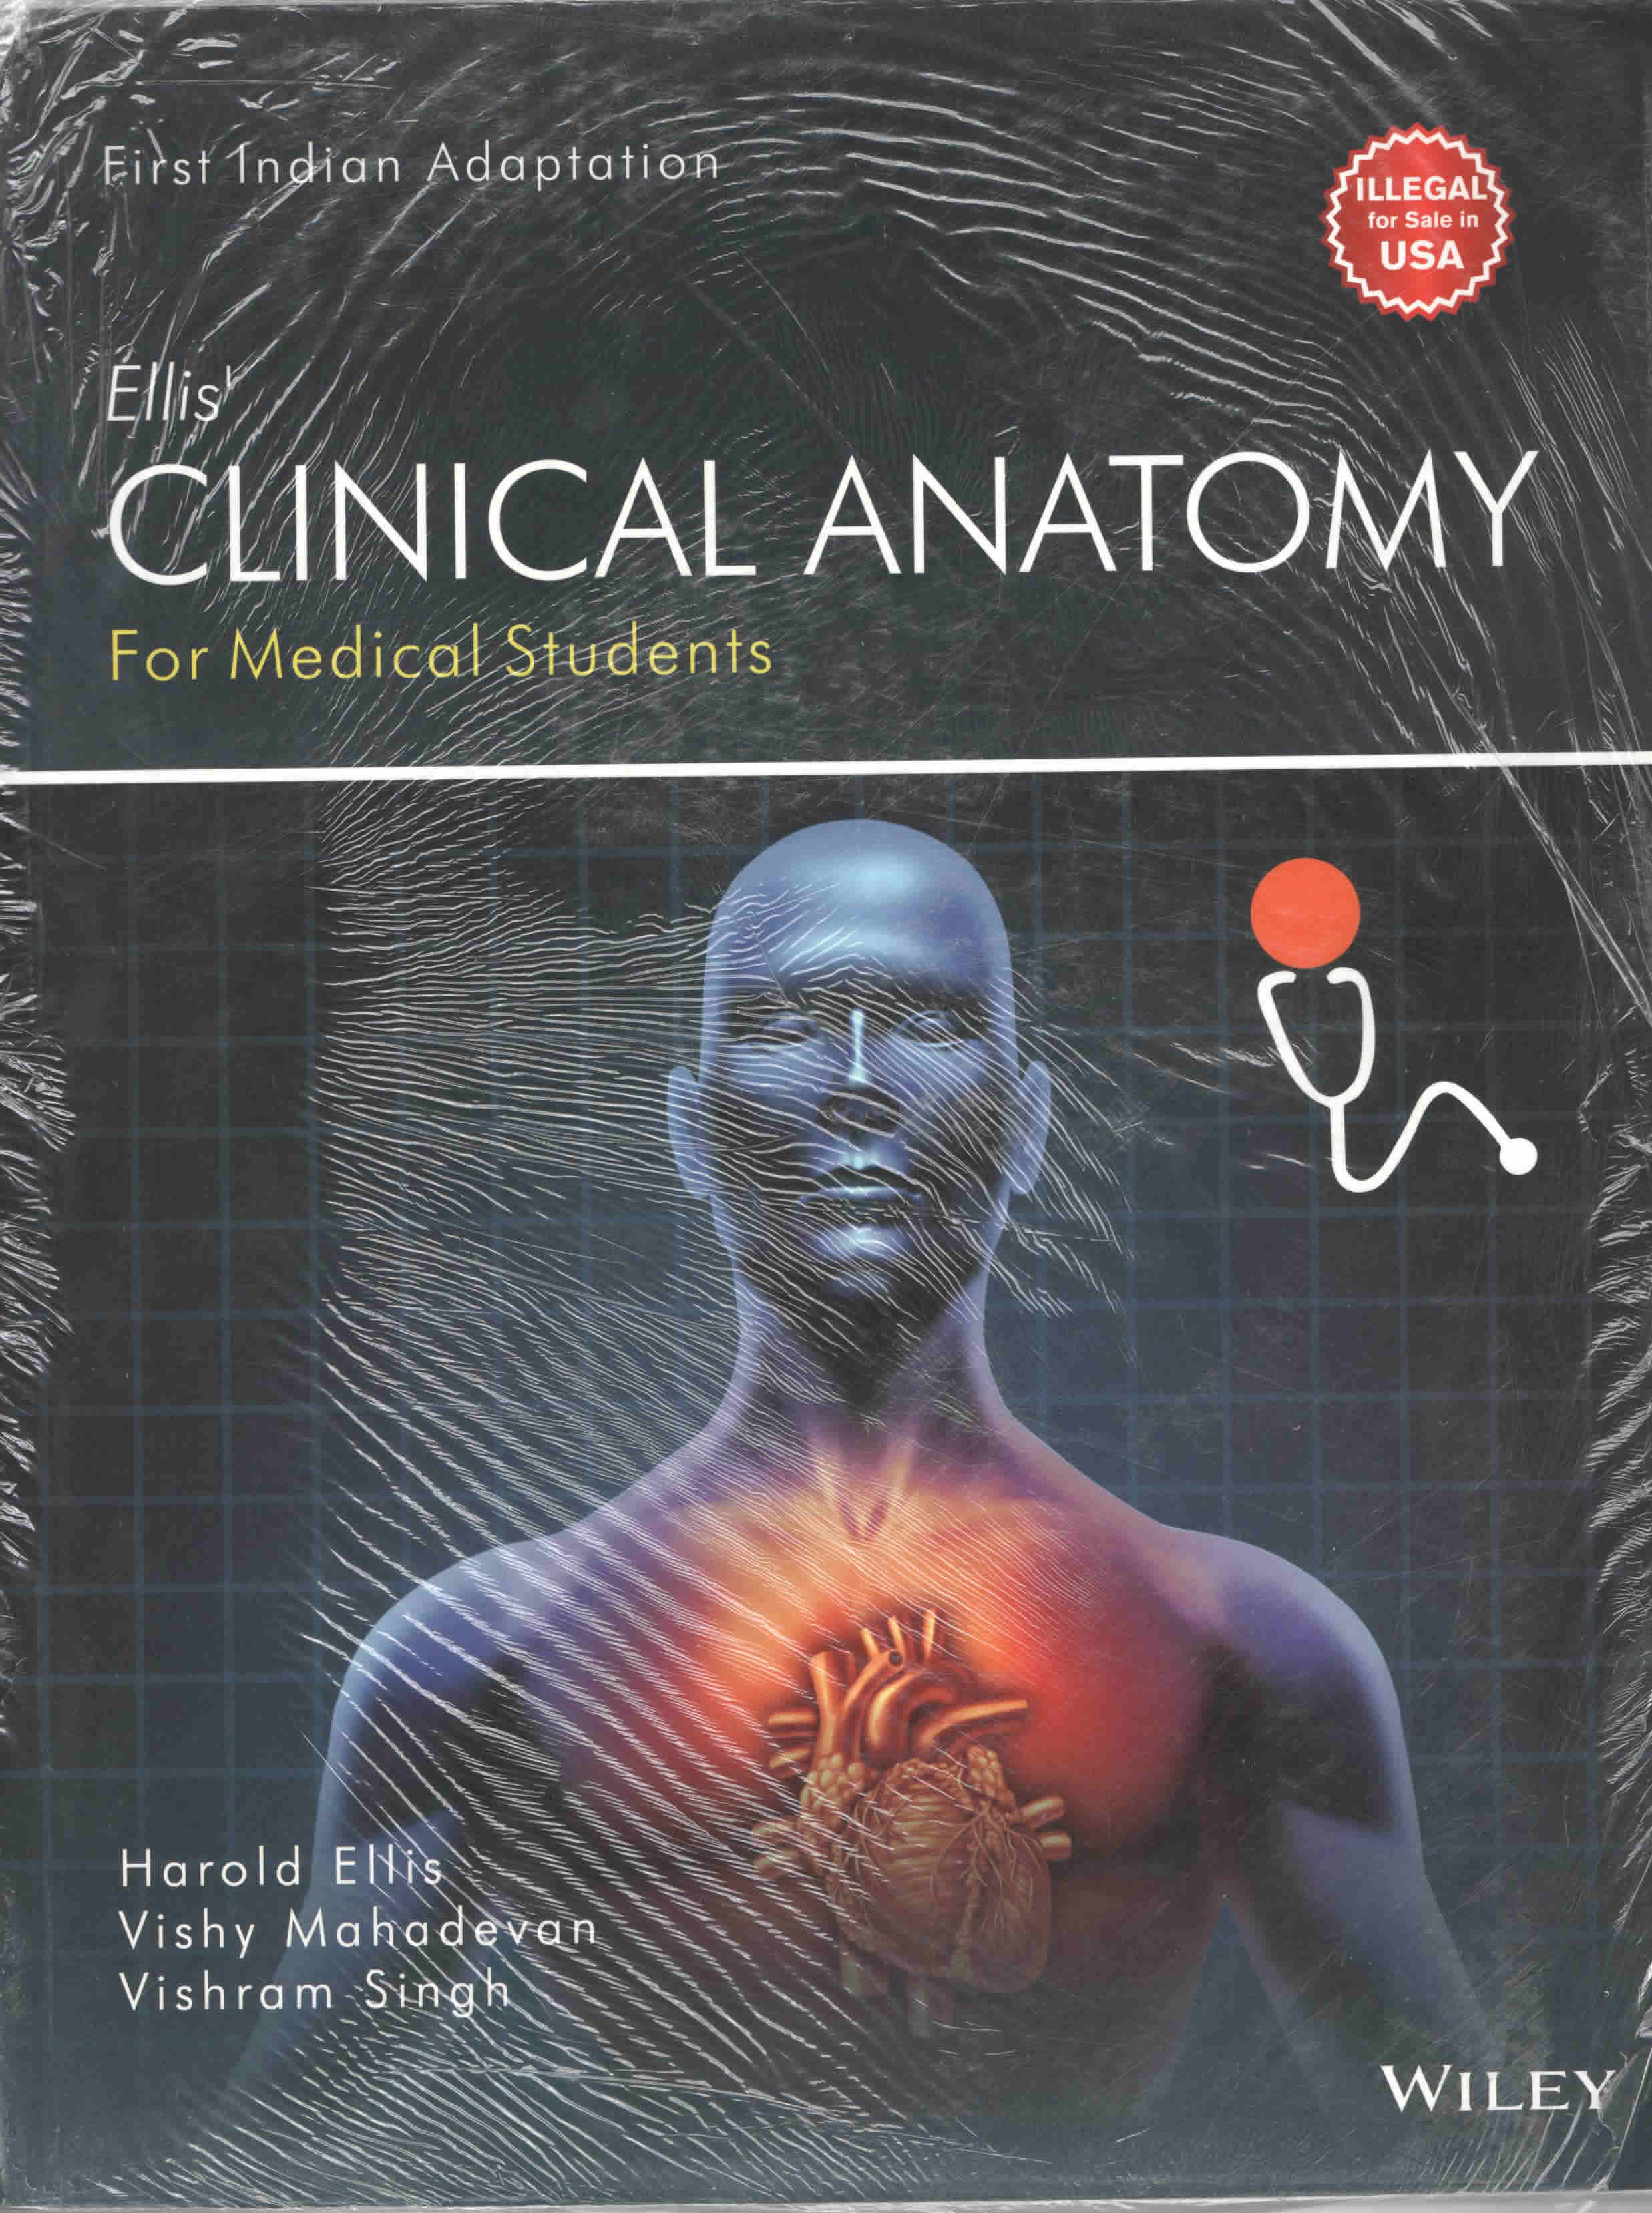 ELLIS CLINICAL ANATOMY FOR MEDICAL STUDENTS